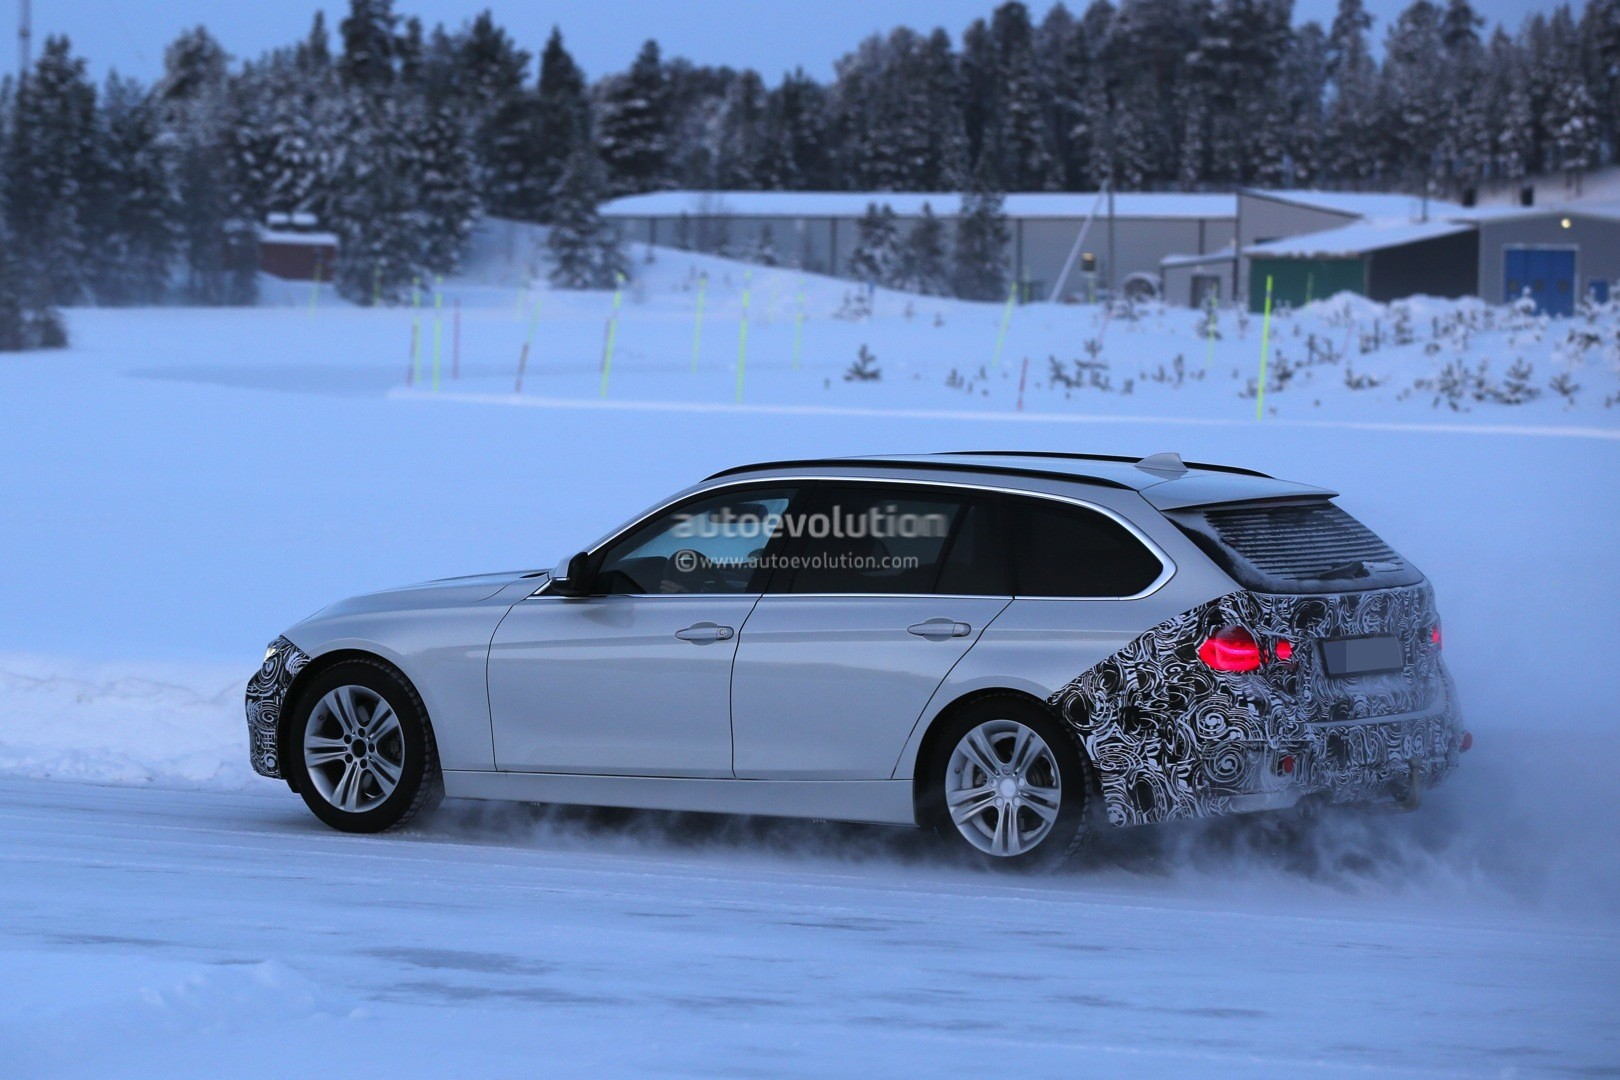 Bmw F Series Touring Facelift Spied Testing In Heavy Snow Photo Gallery on Bmw 5 Series Touring